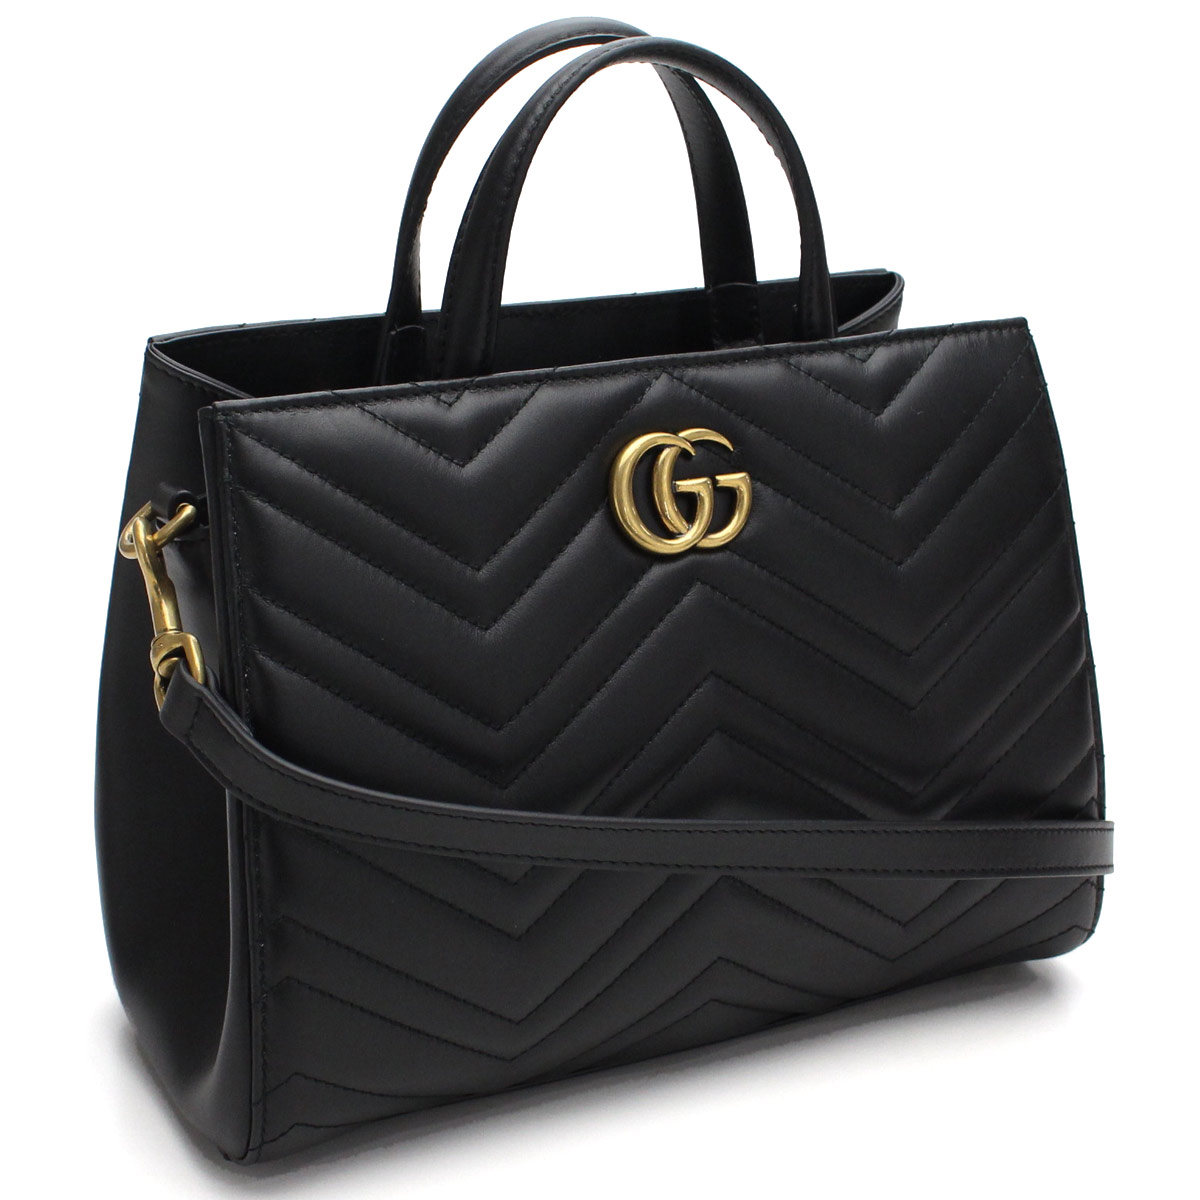 a2b9229927b Bighit The total brand wholesale  Gucci (GUCCI) GG MARMONT 2way handbag  448054 DTD1T 1000 black